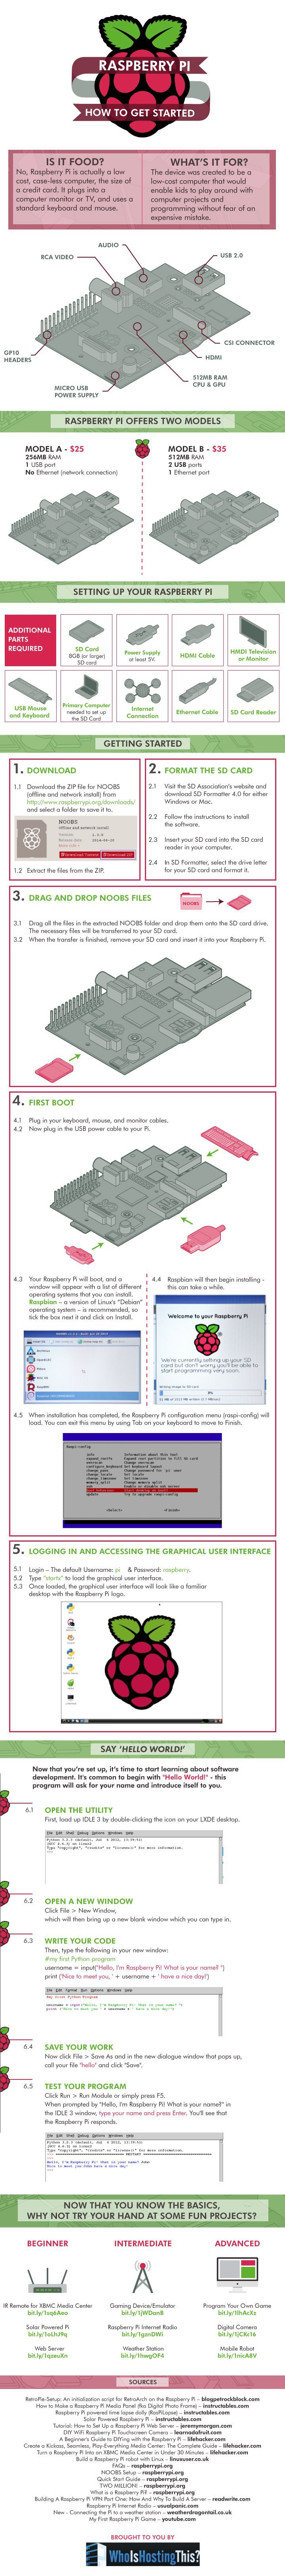 Raspberry Pi: How To Get Started   #Technology | #Infographic repinned by @Piktochart | Create yours at www.piktochart.com